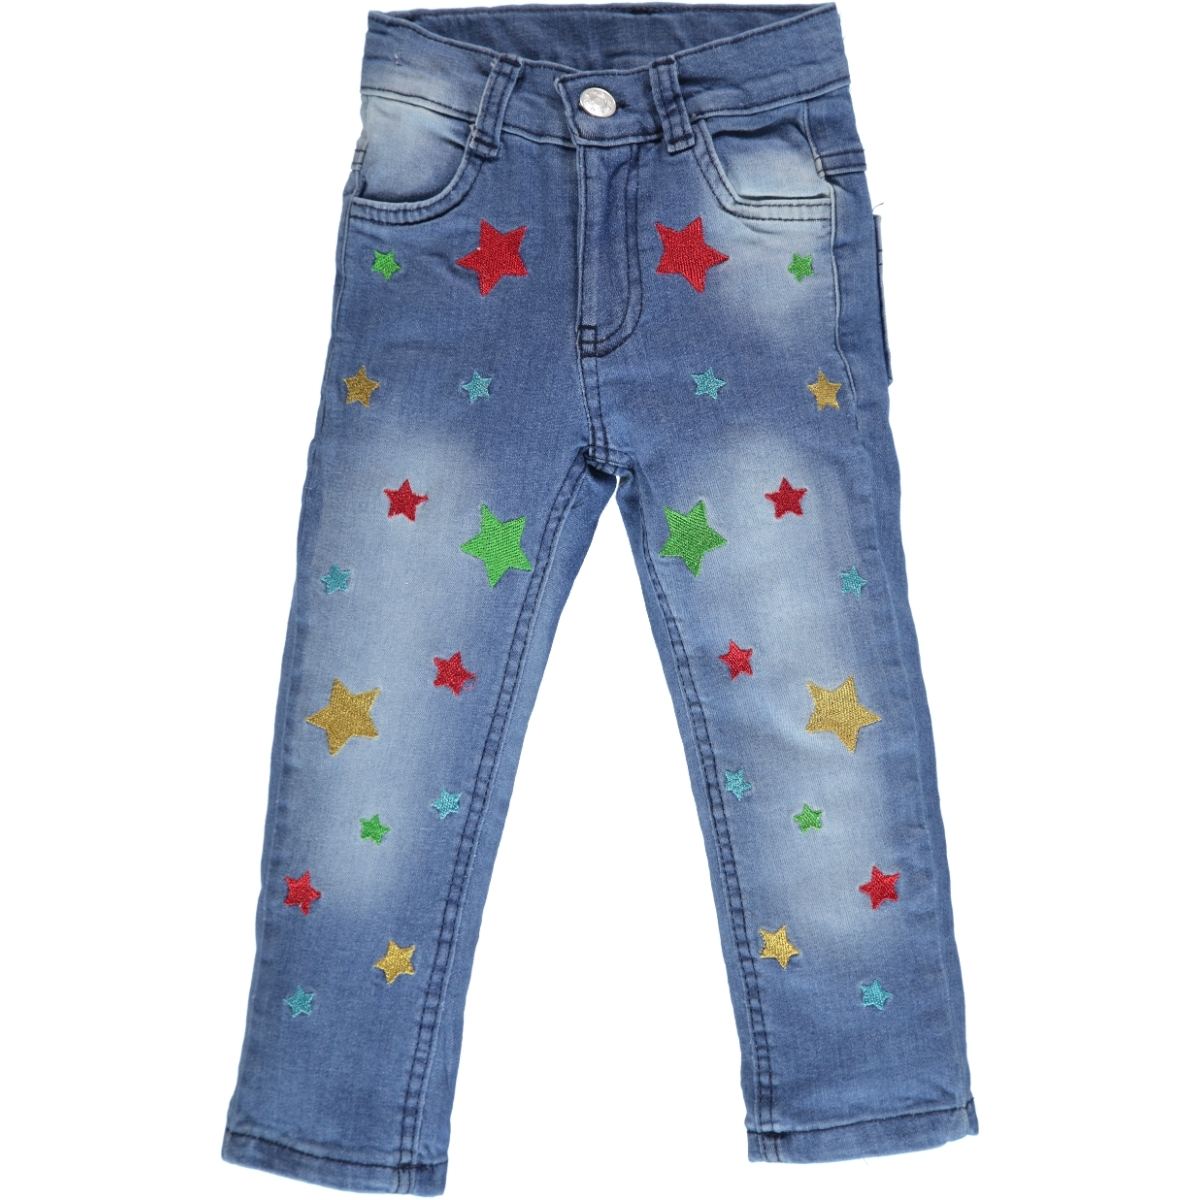 Civil Boys 2-5 Years Blue Jeans Boy